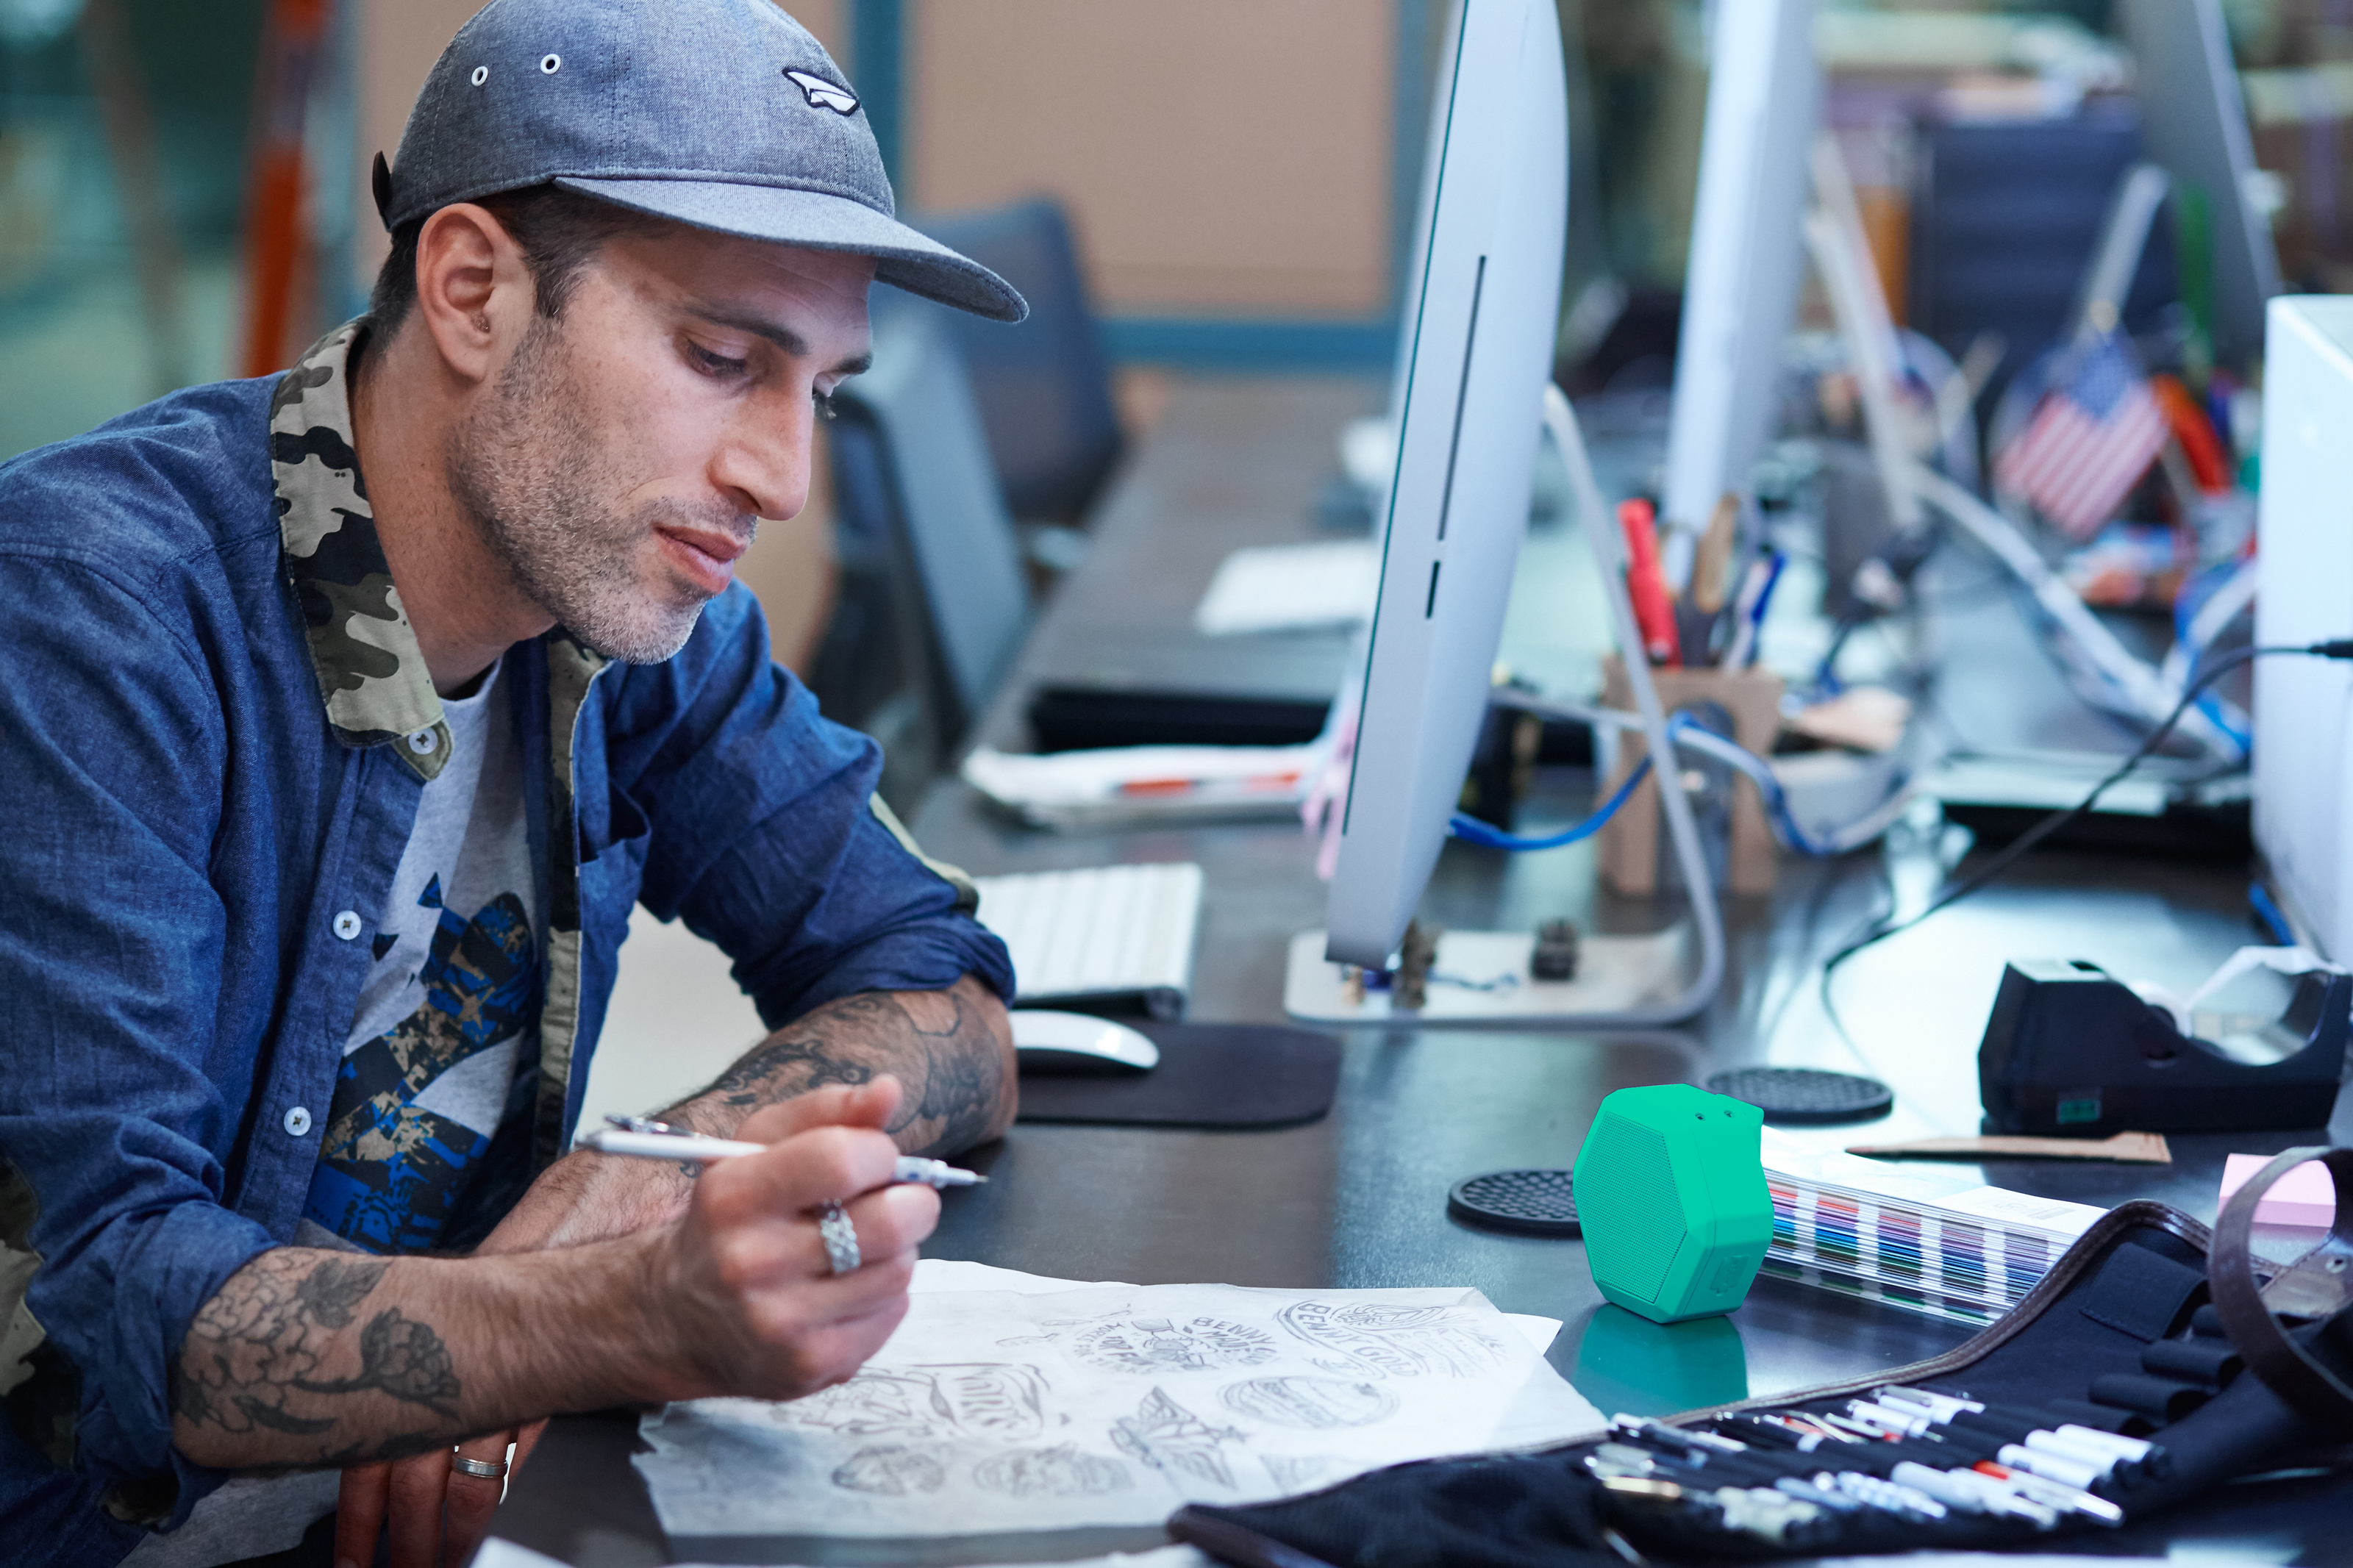 Benny Gold working on logo illustrations on tracing paper